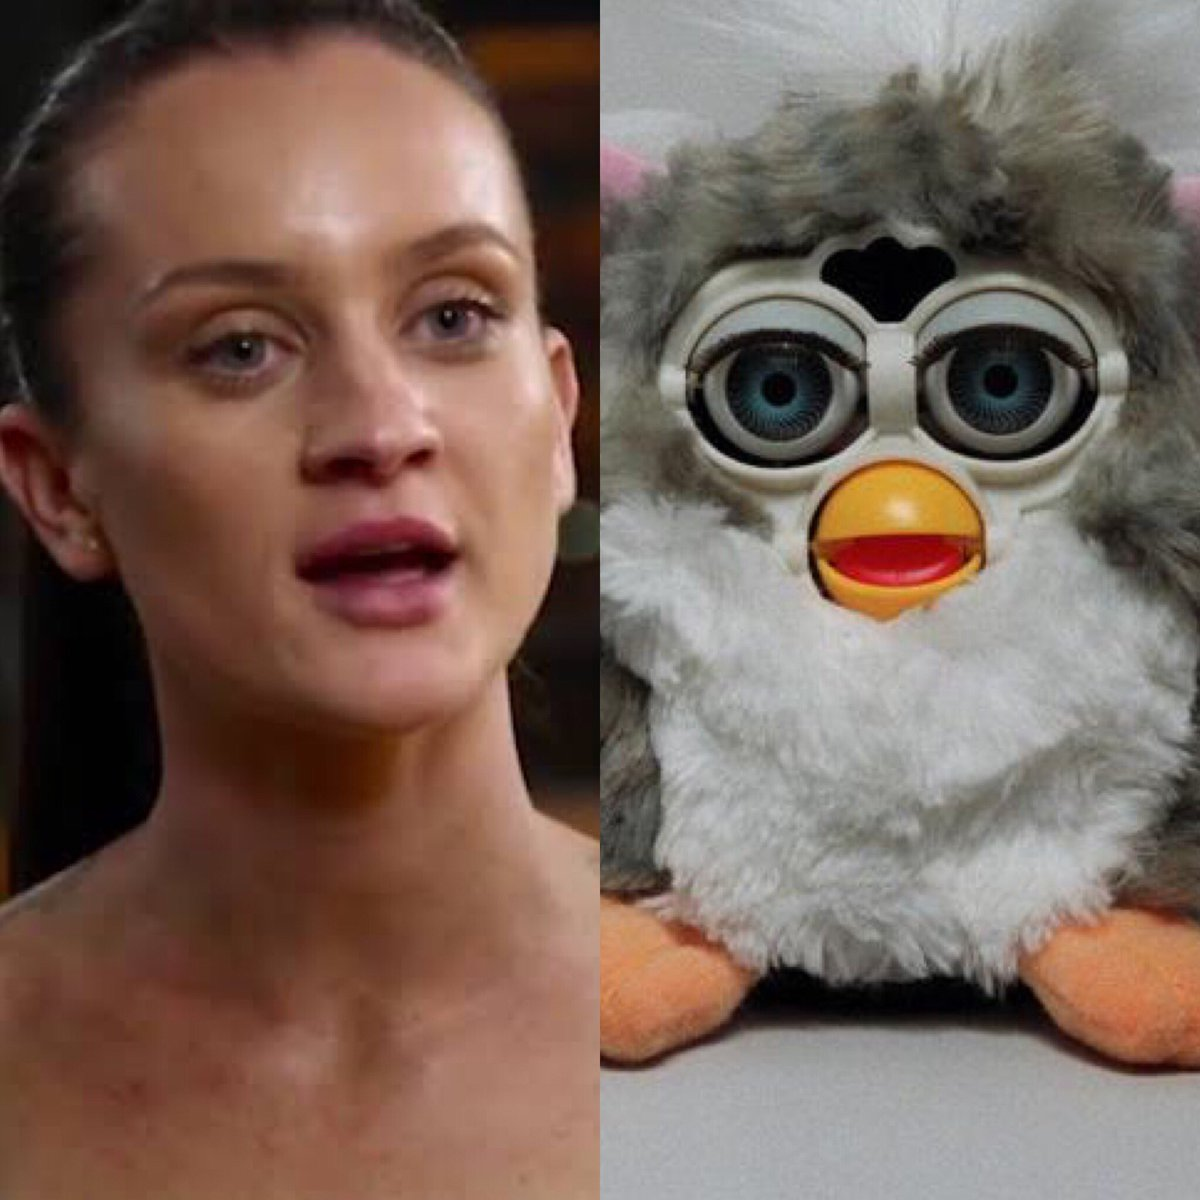 Anyone else notice how Ines looks like a Furby? #mafs<br>http://pic.twitter.com/D9W30clCKV